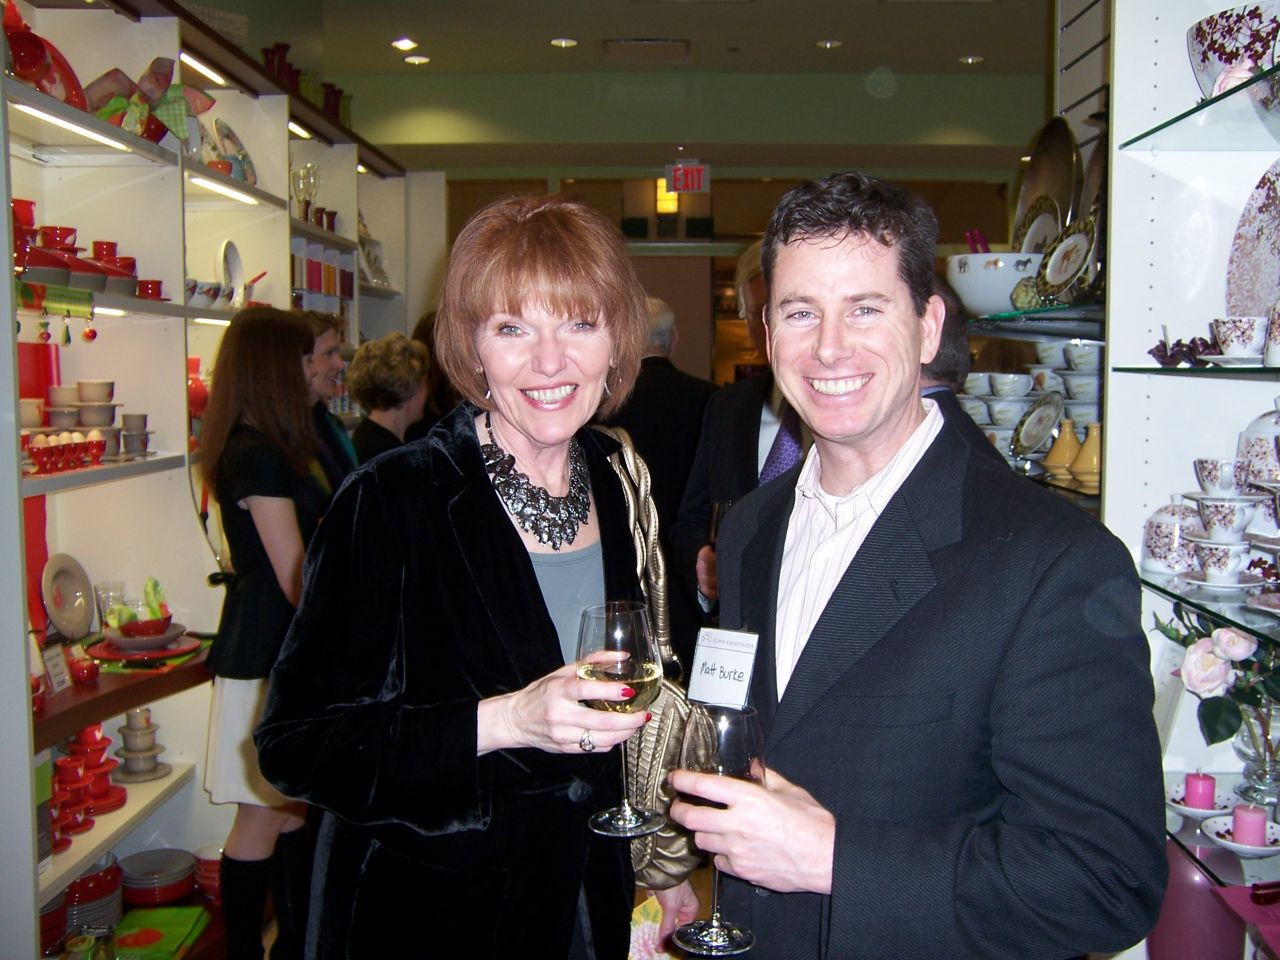 Susan Hartigan and Matt Burke